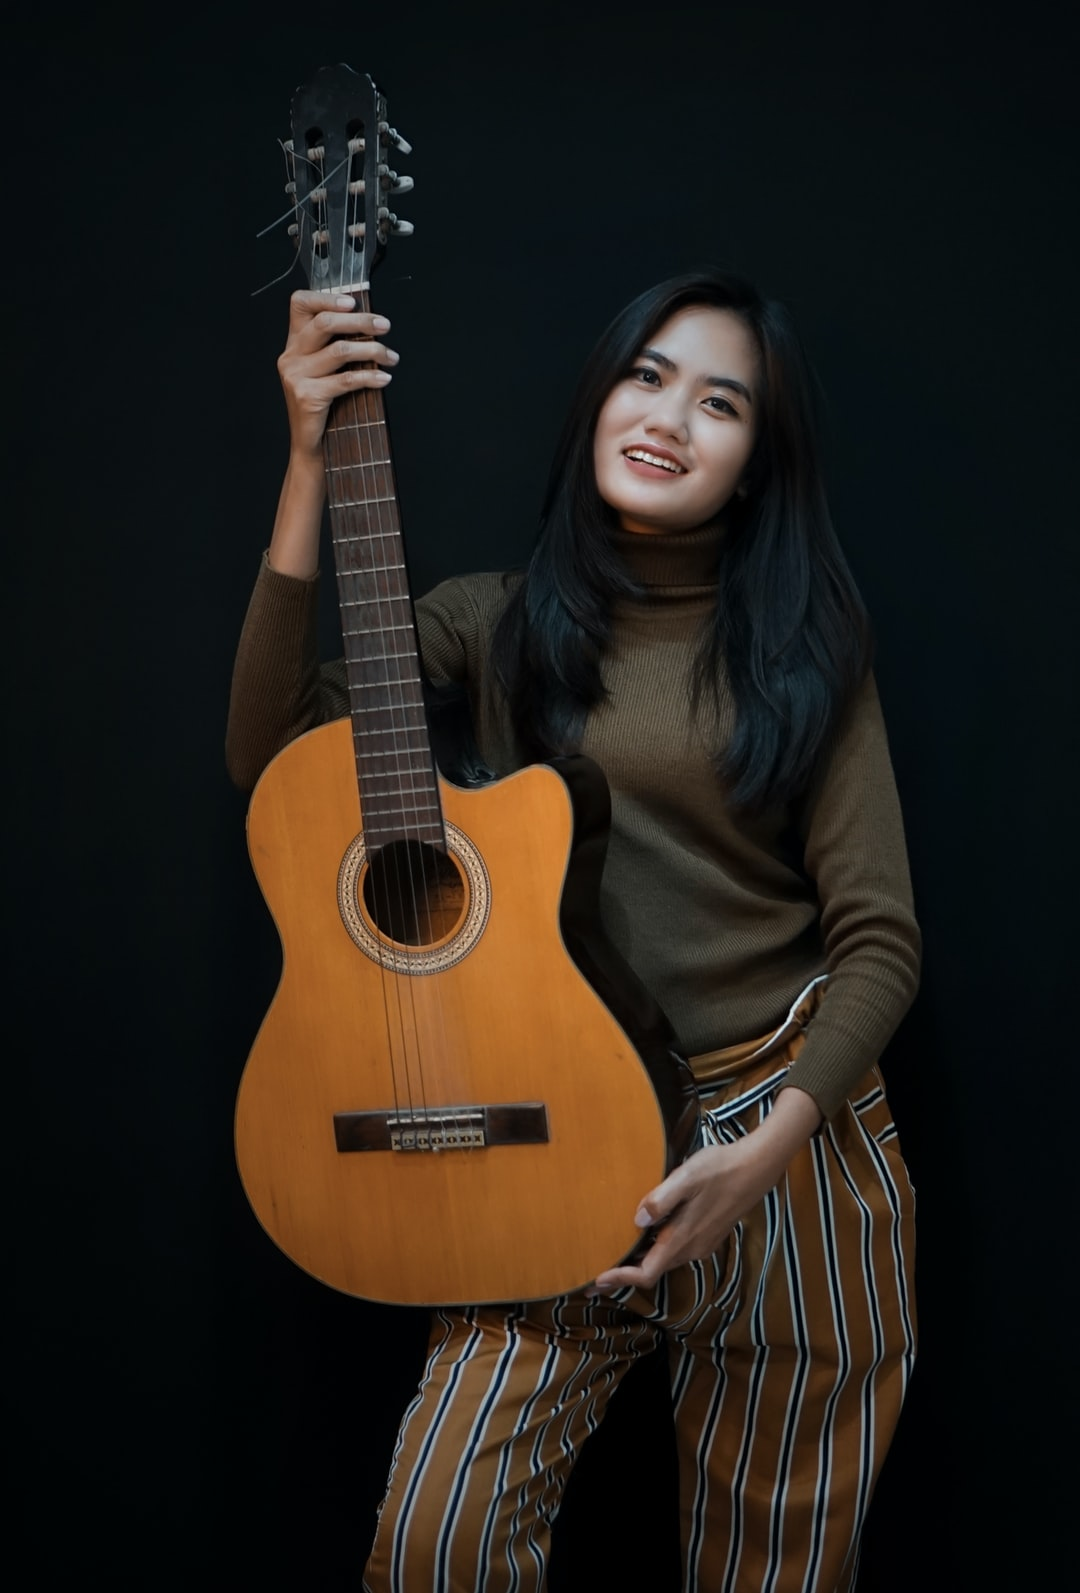 Woman Guitar Pictures Download Free Images On Unsplash